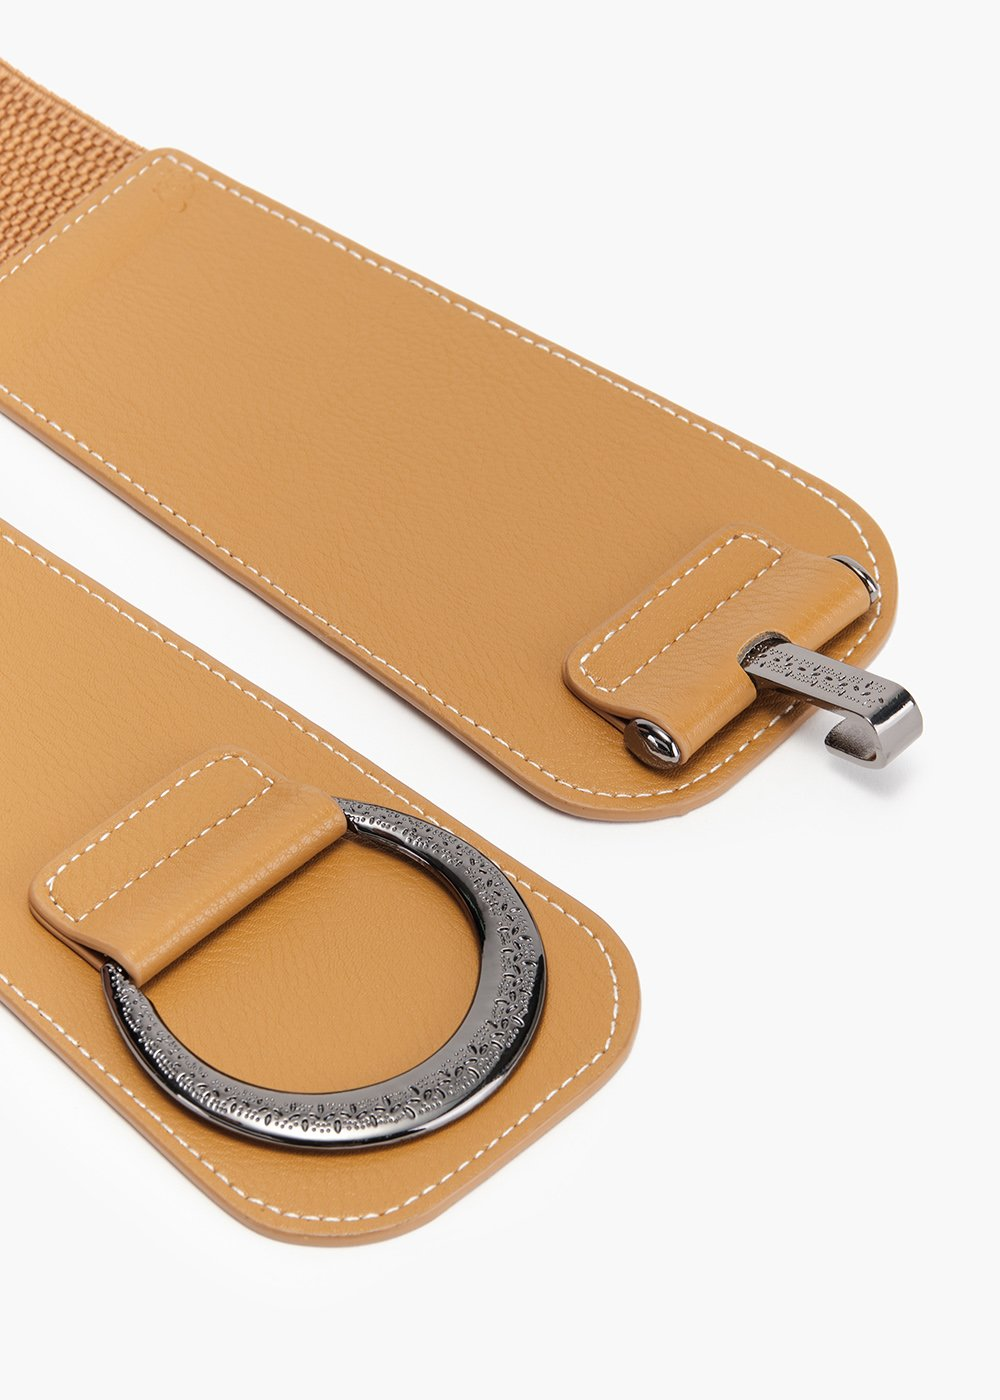 Crissy belt in eco-leather with metal closure and elastic part - Mustard - Woman